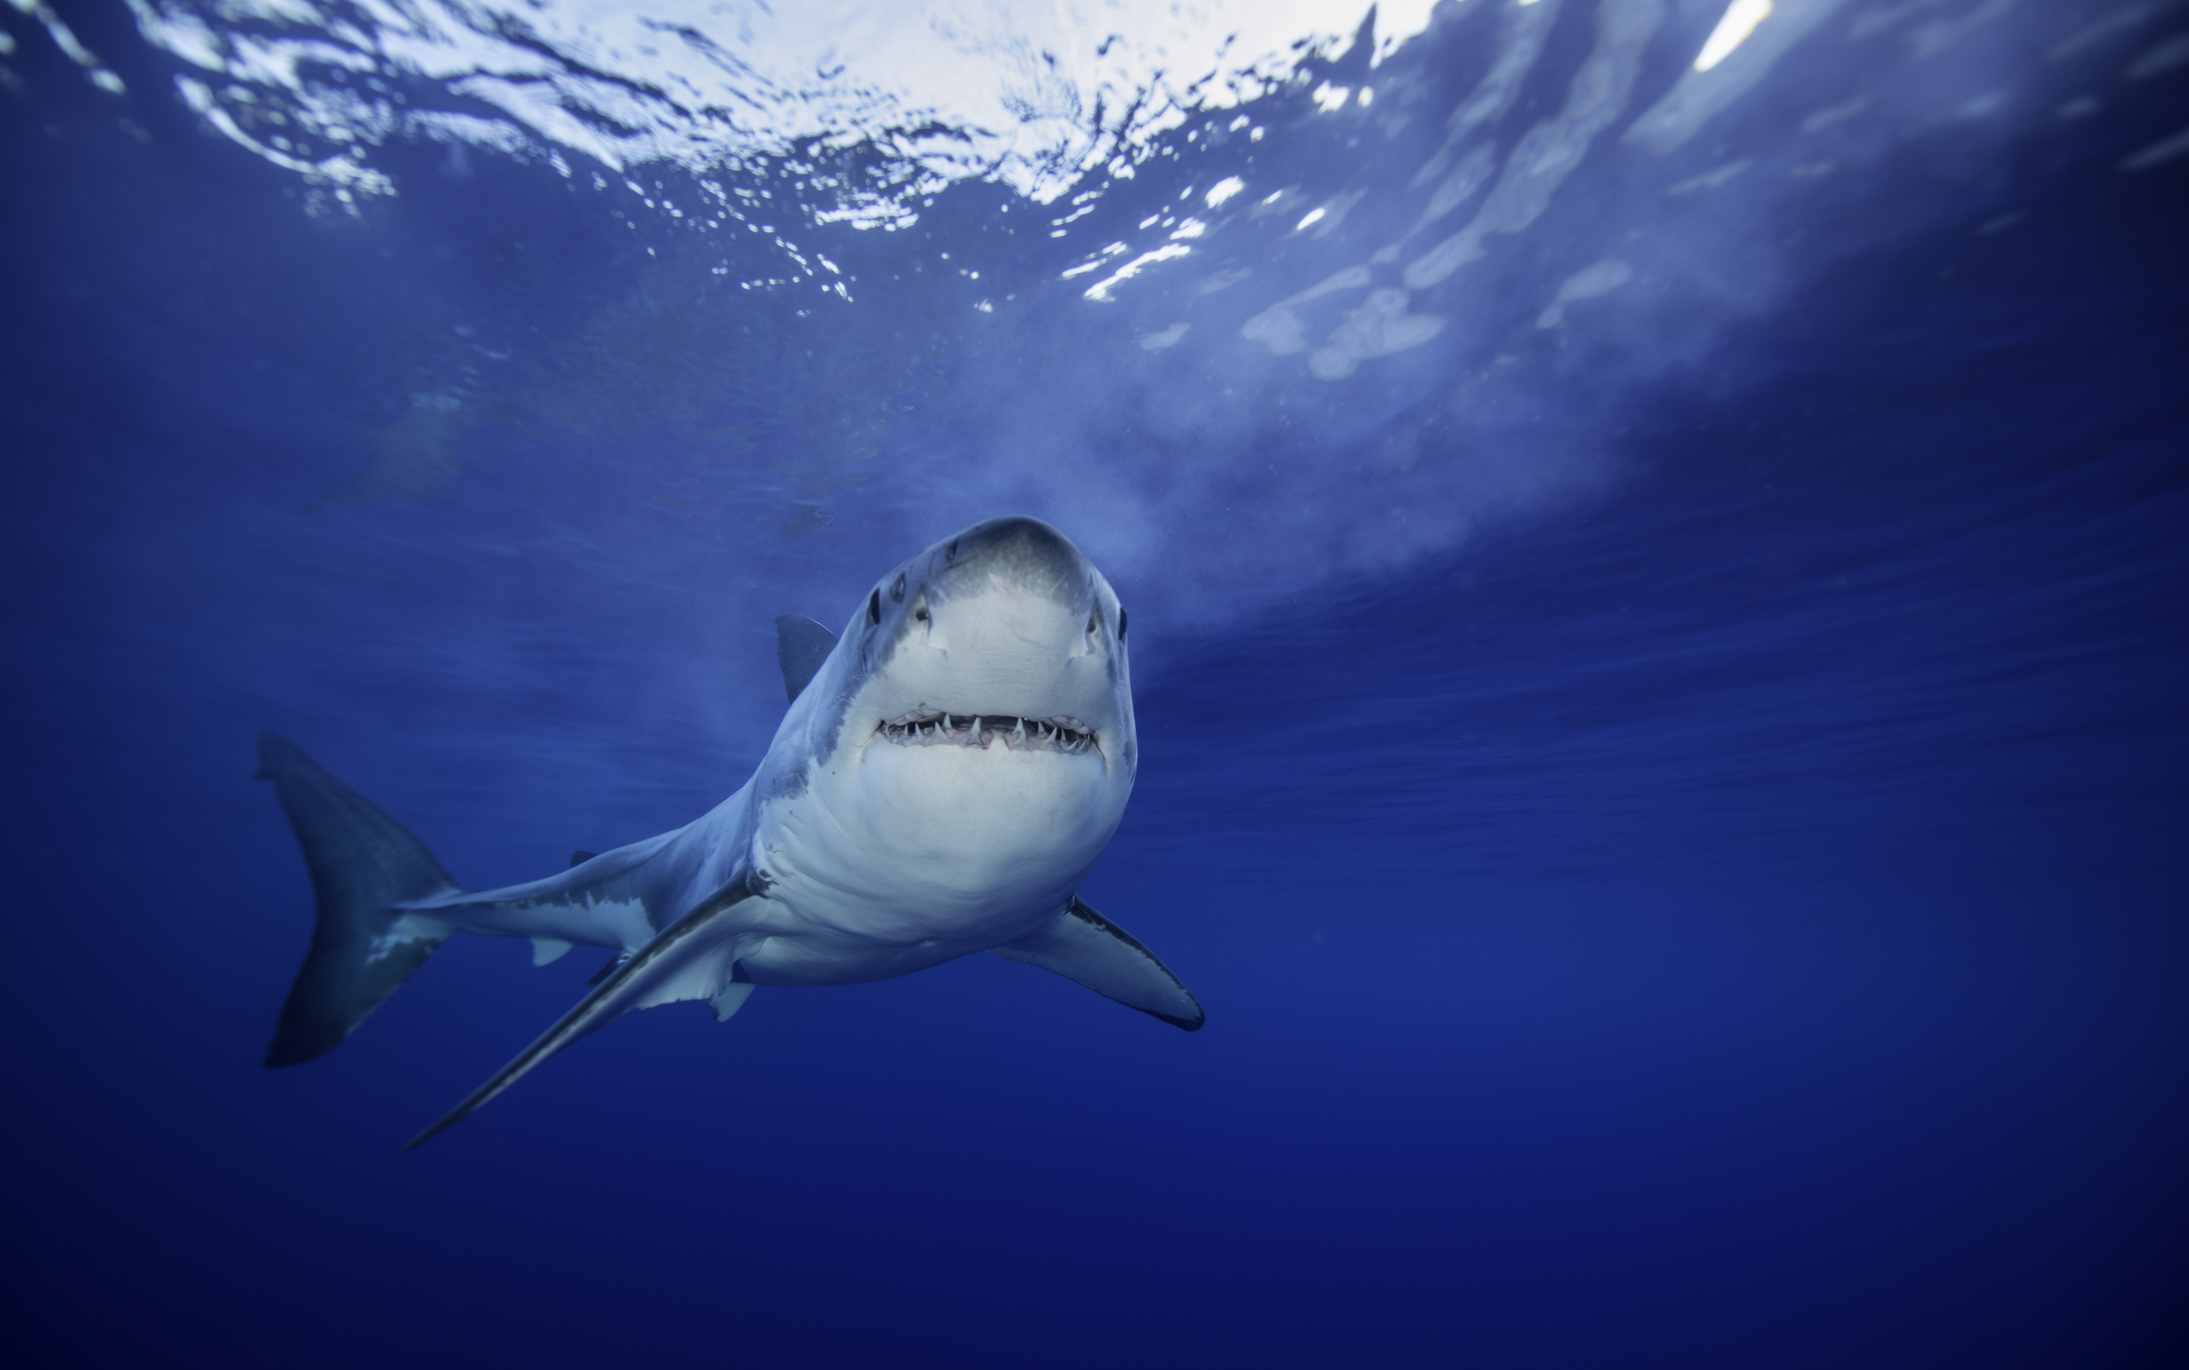 Here's how to stream Shark Week 2018 if you don't have cable